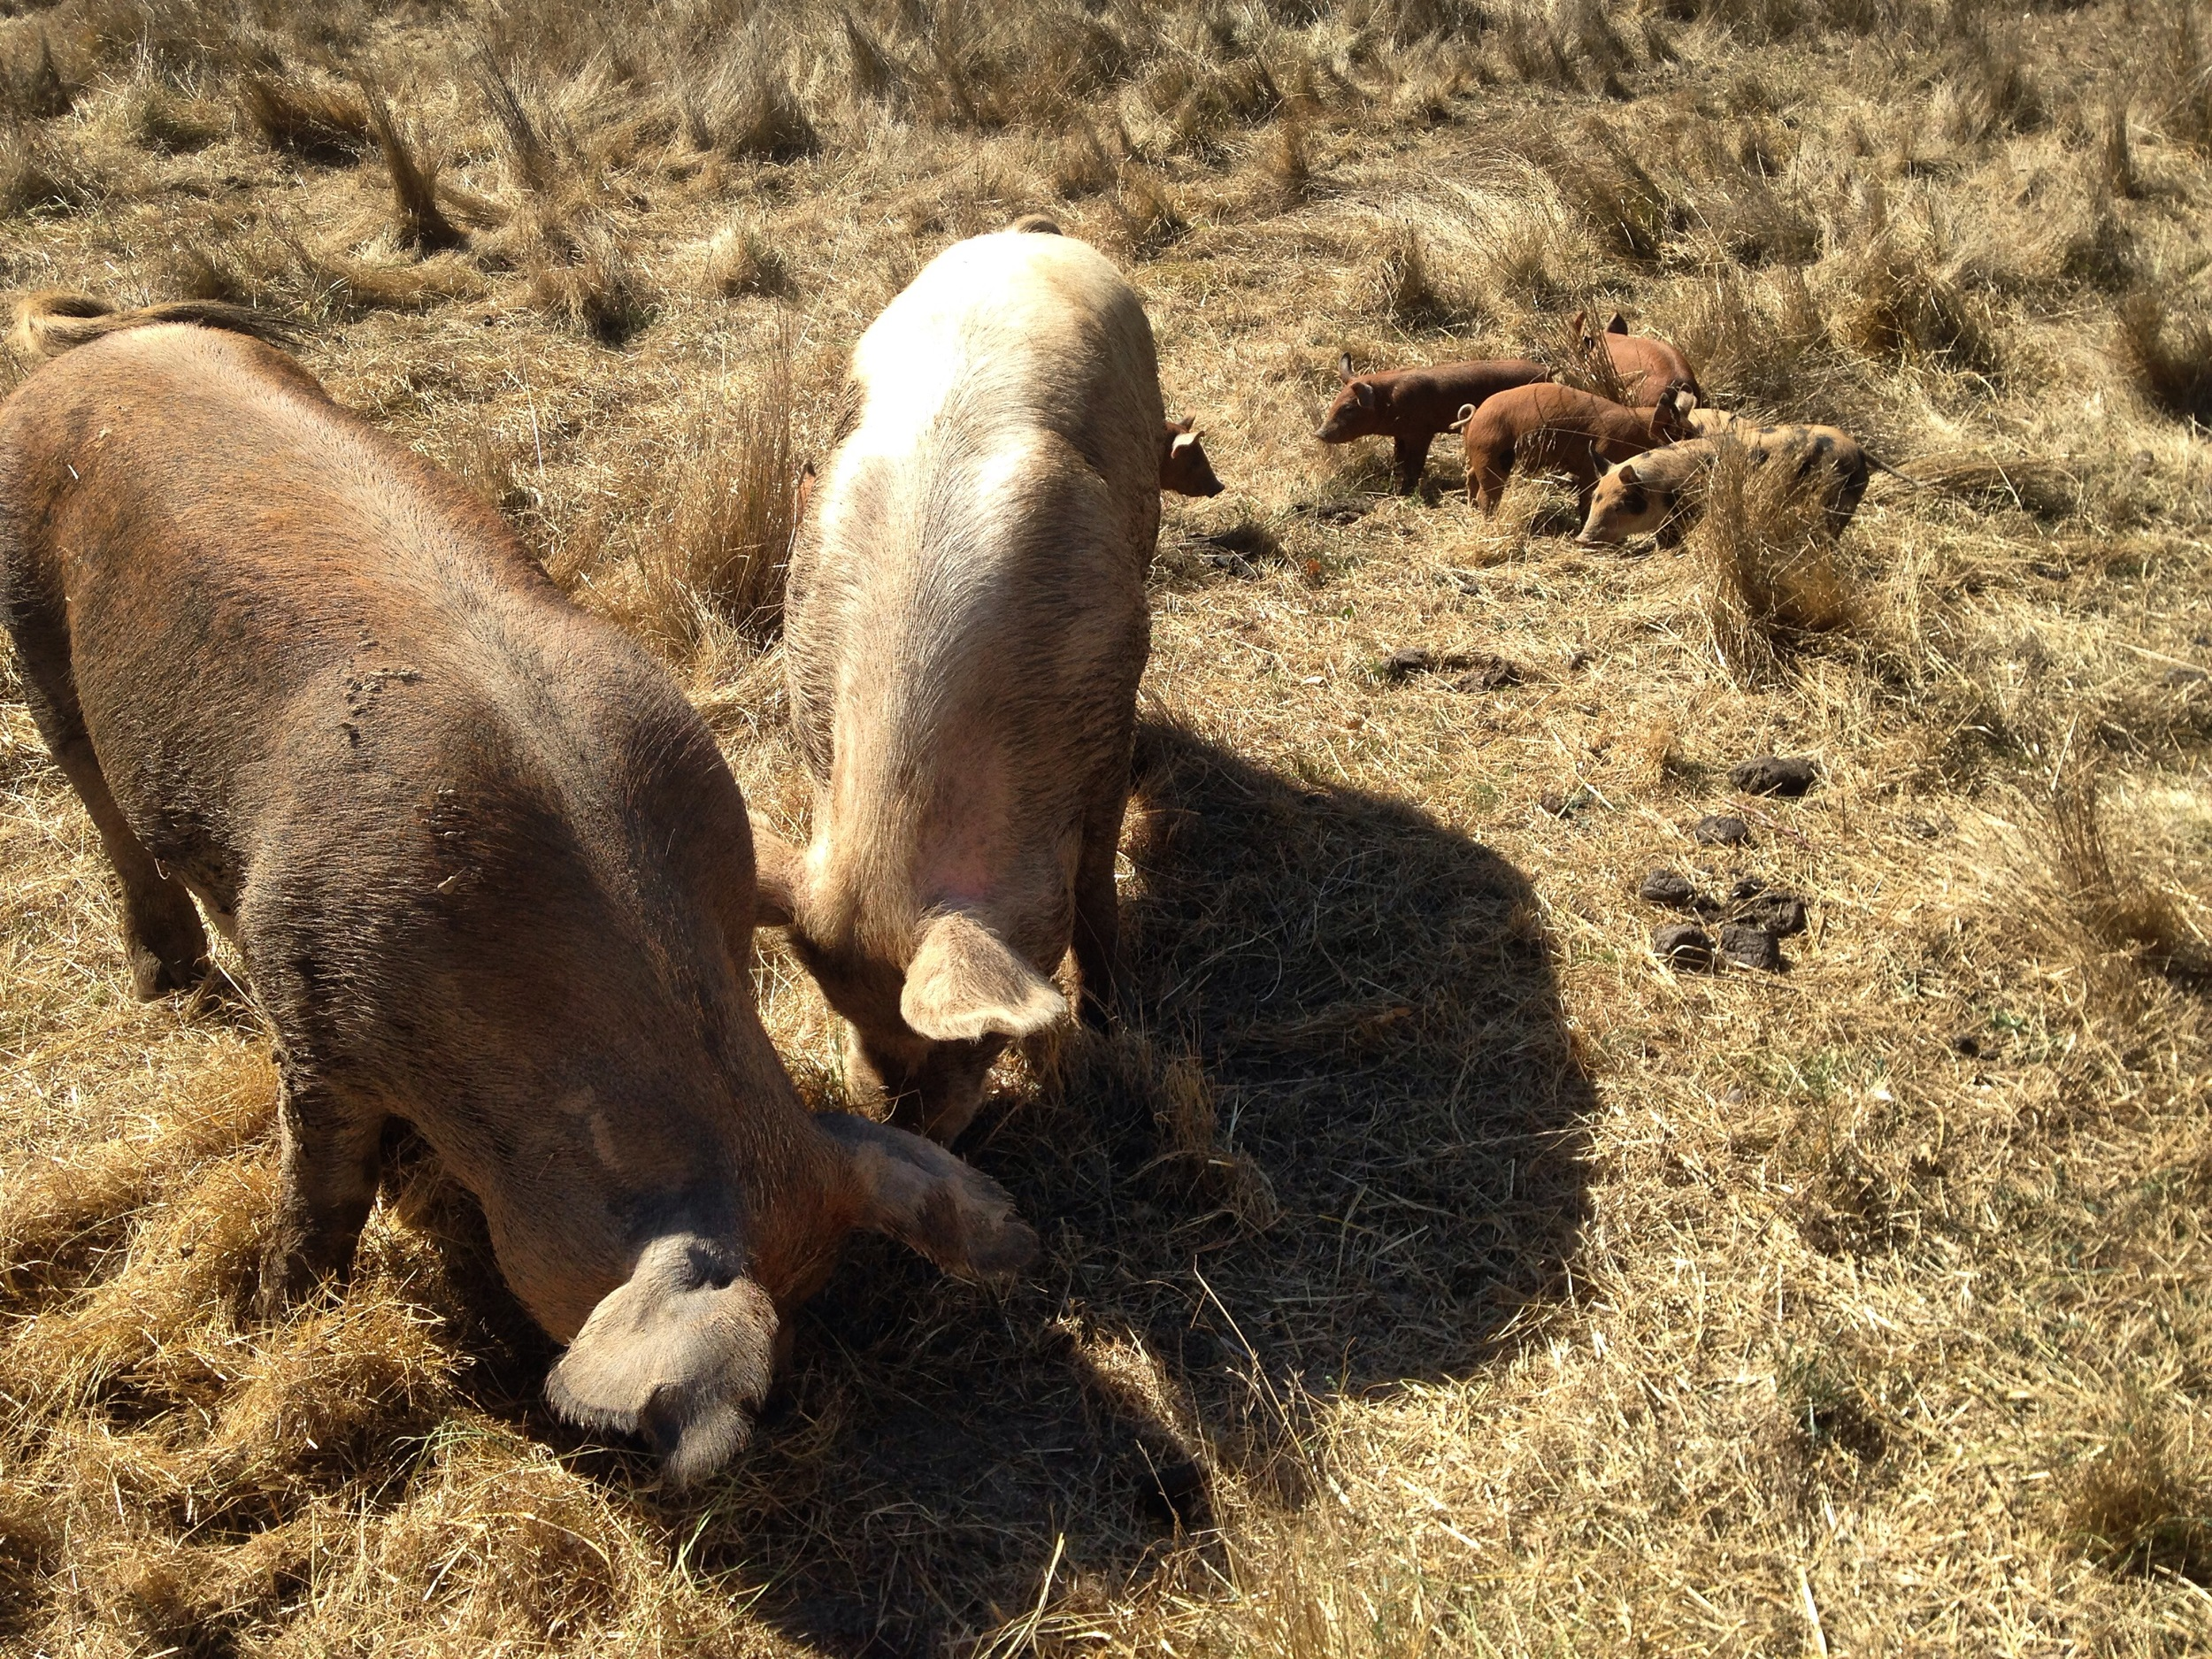 These pigs were much more interested in eating than in looking at the camera.